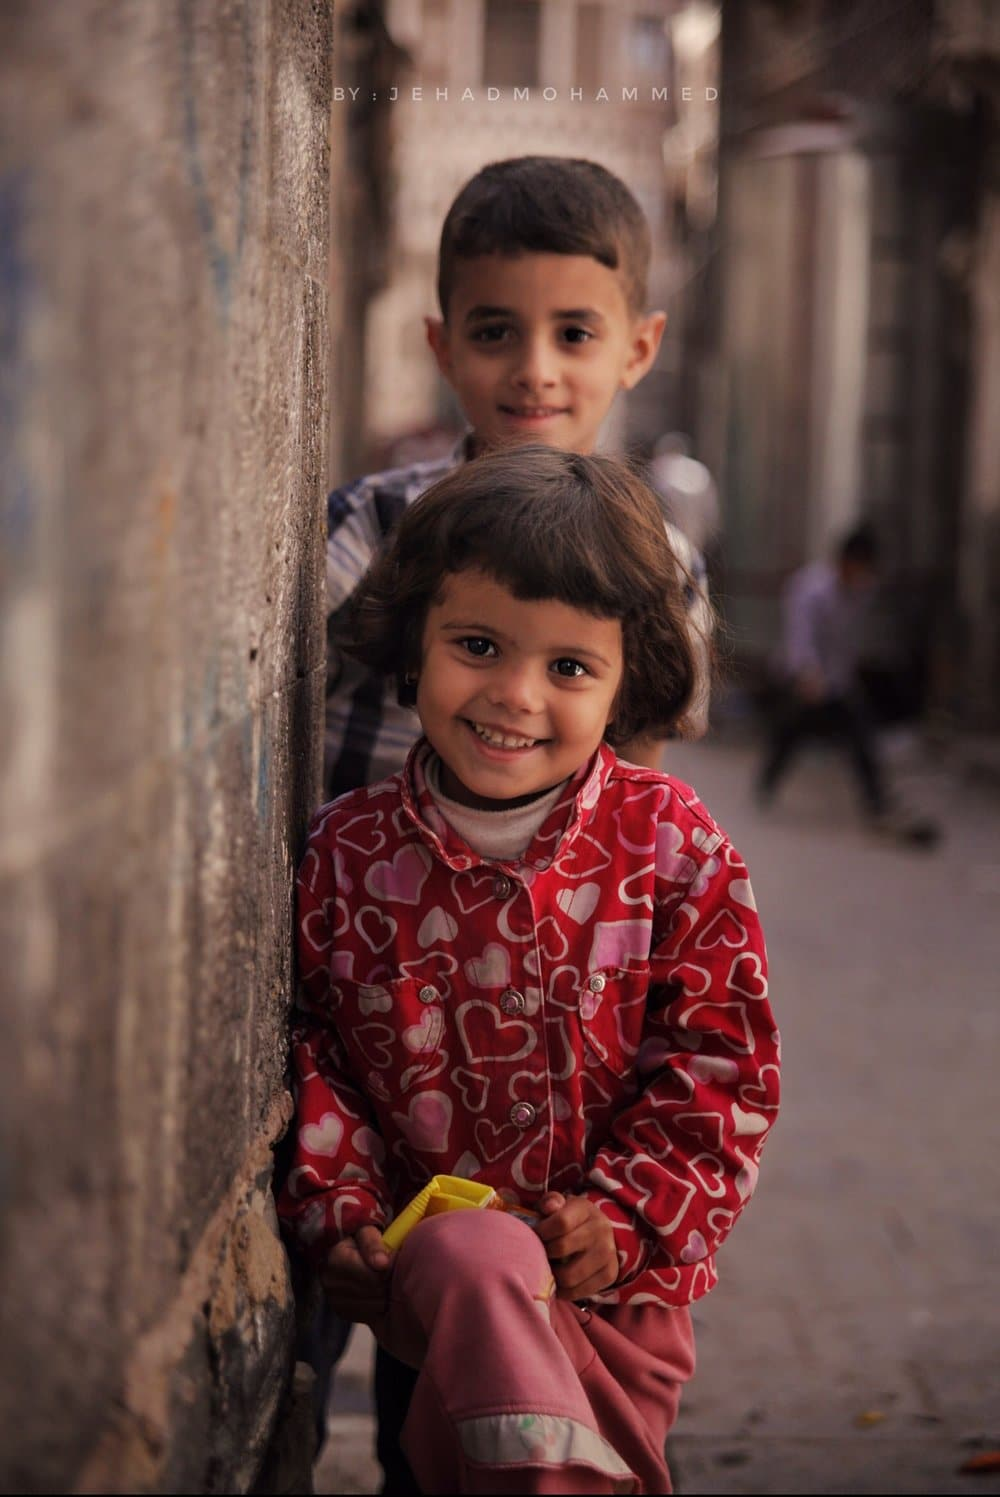 Faces of Two children in the Streets of Old Sanaa City - Jehad